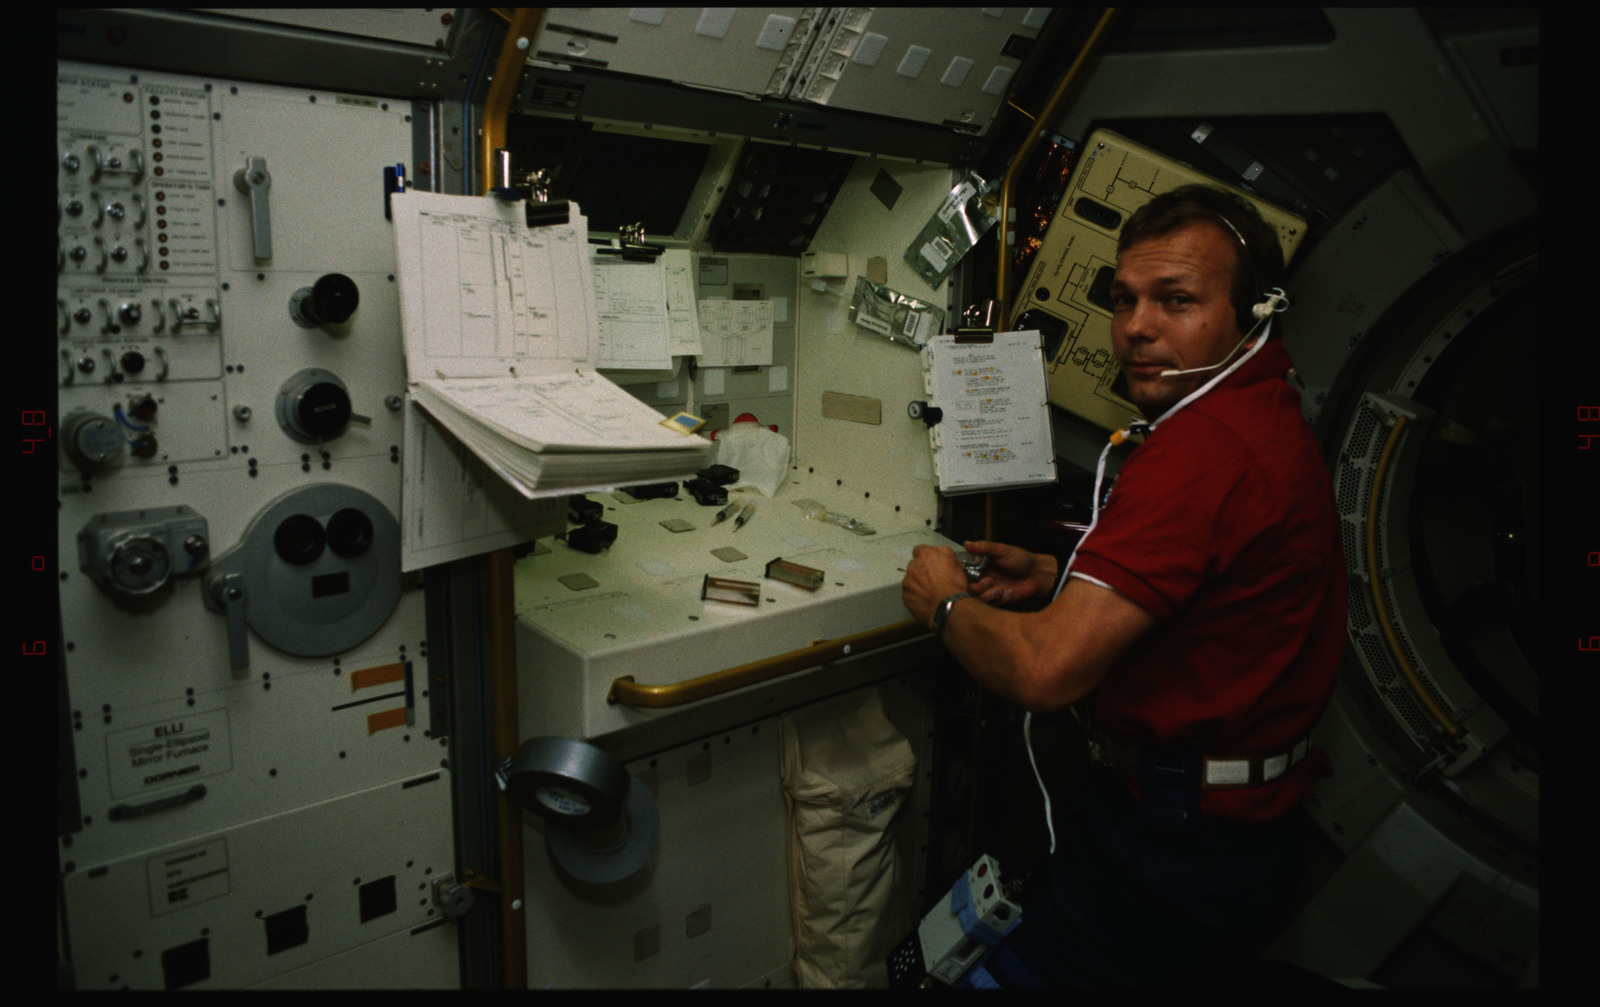 STS055-229-015 - STS-055 - Crewmember and Life Sciences Experiments in the D-2 Spacelab.